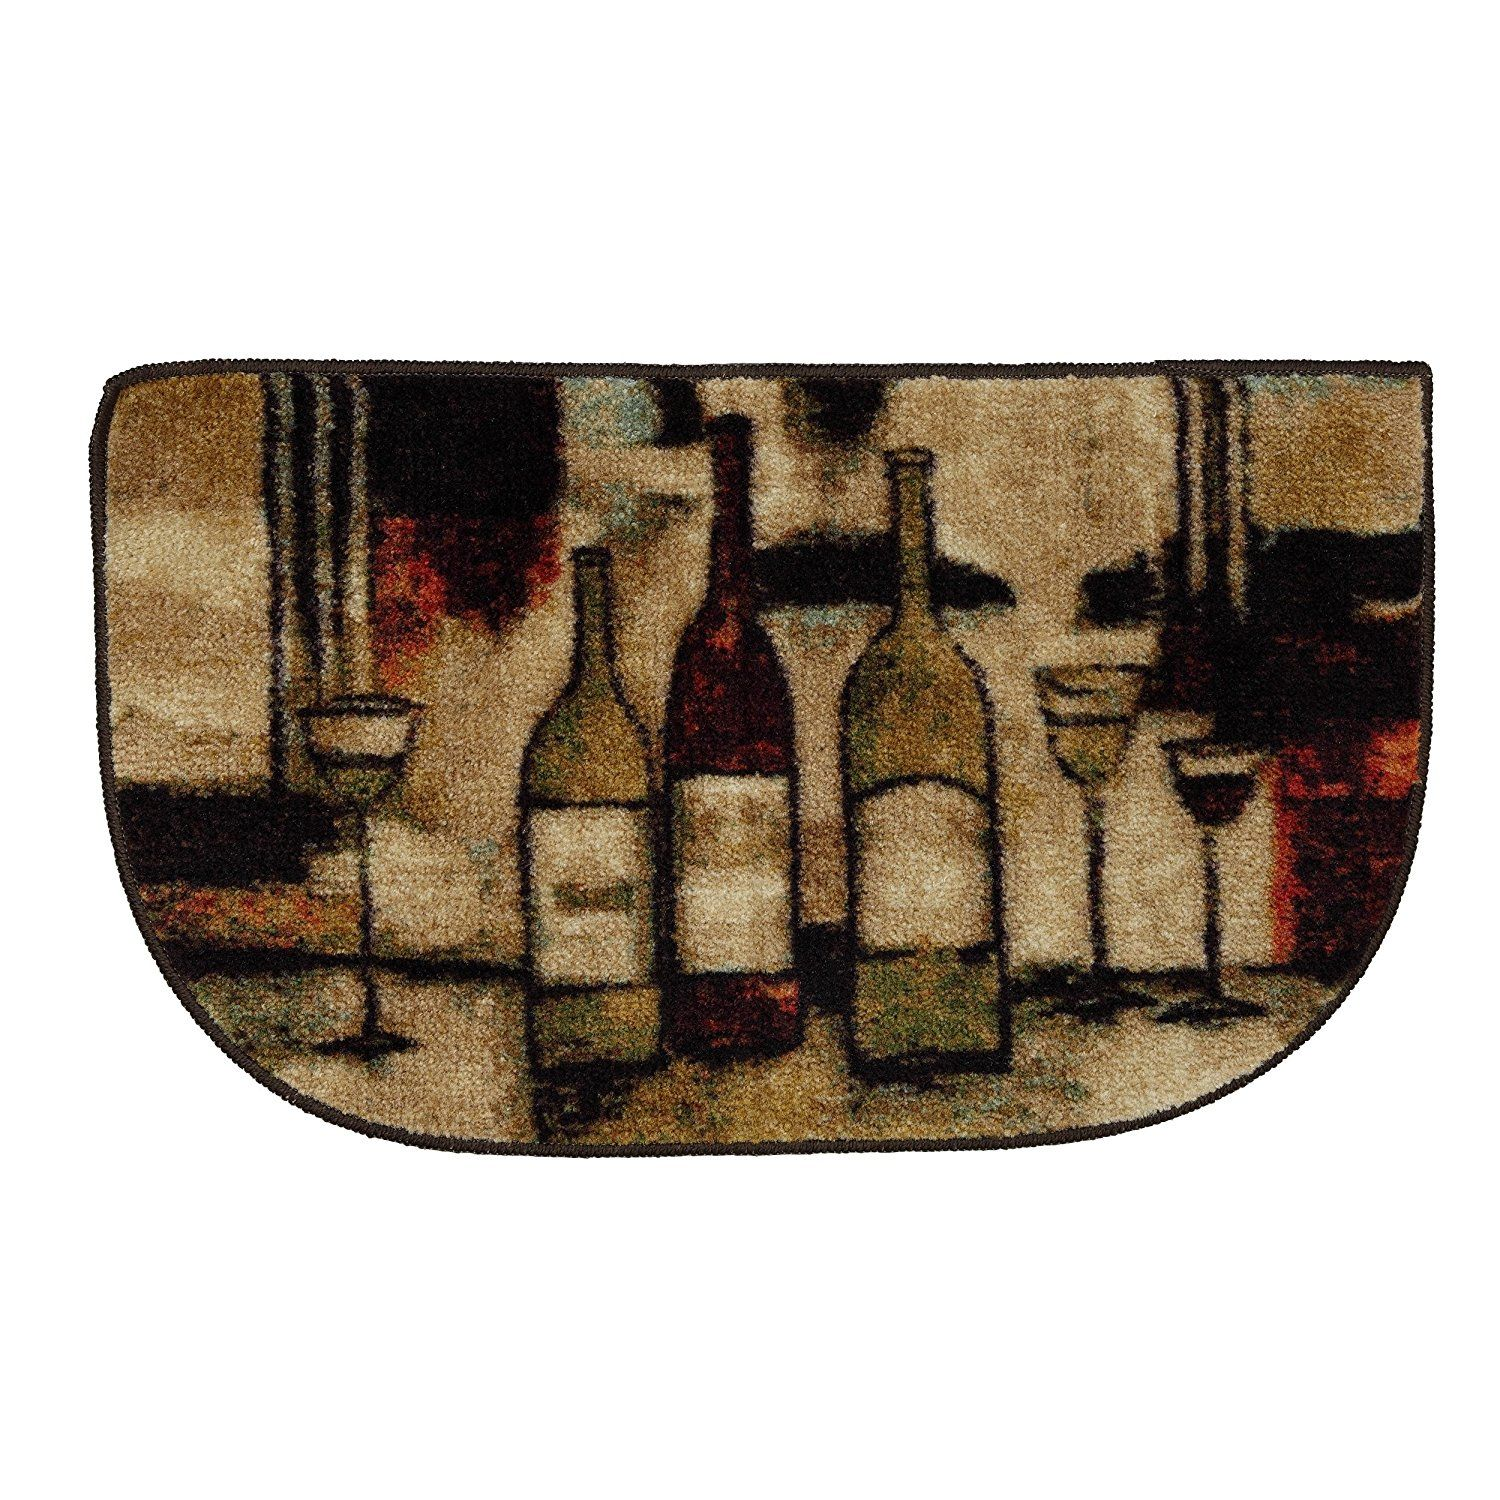 U x u slice home new wave wine and glasses themed brown area rug